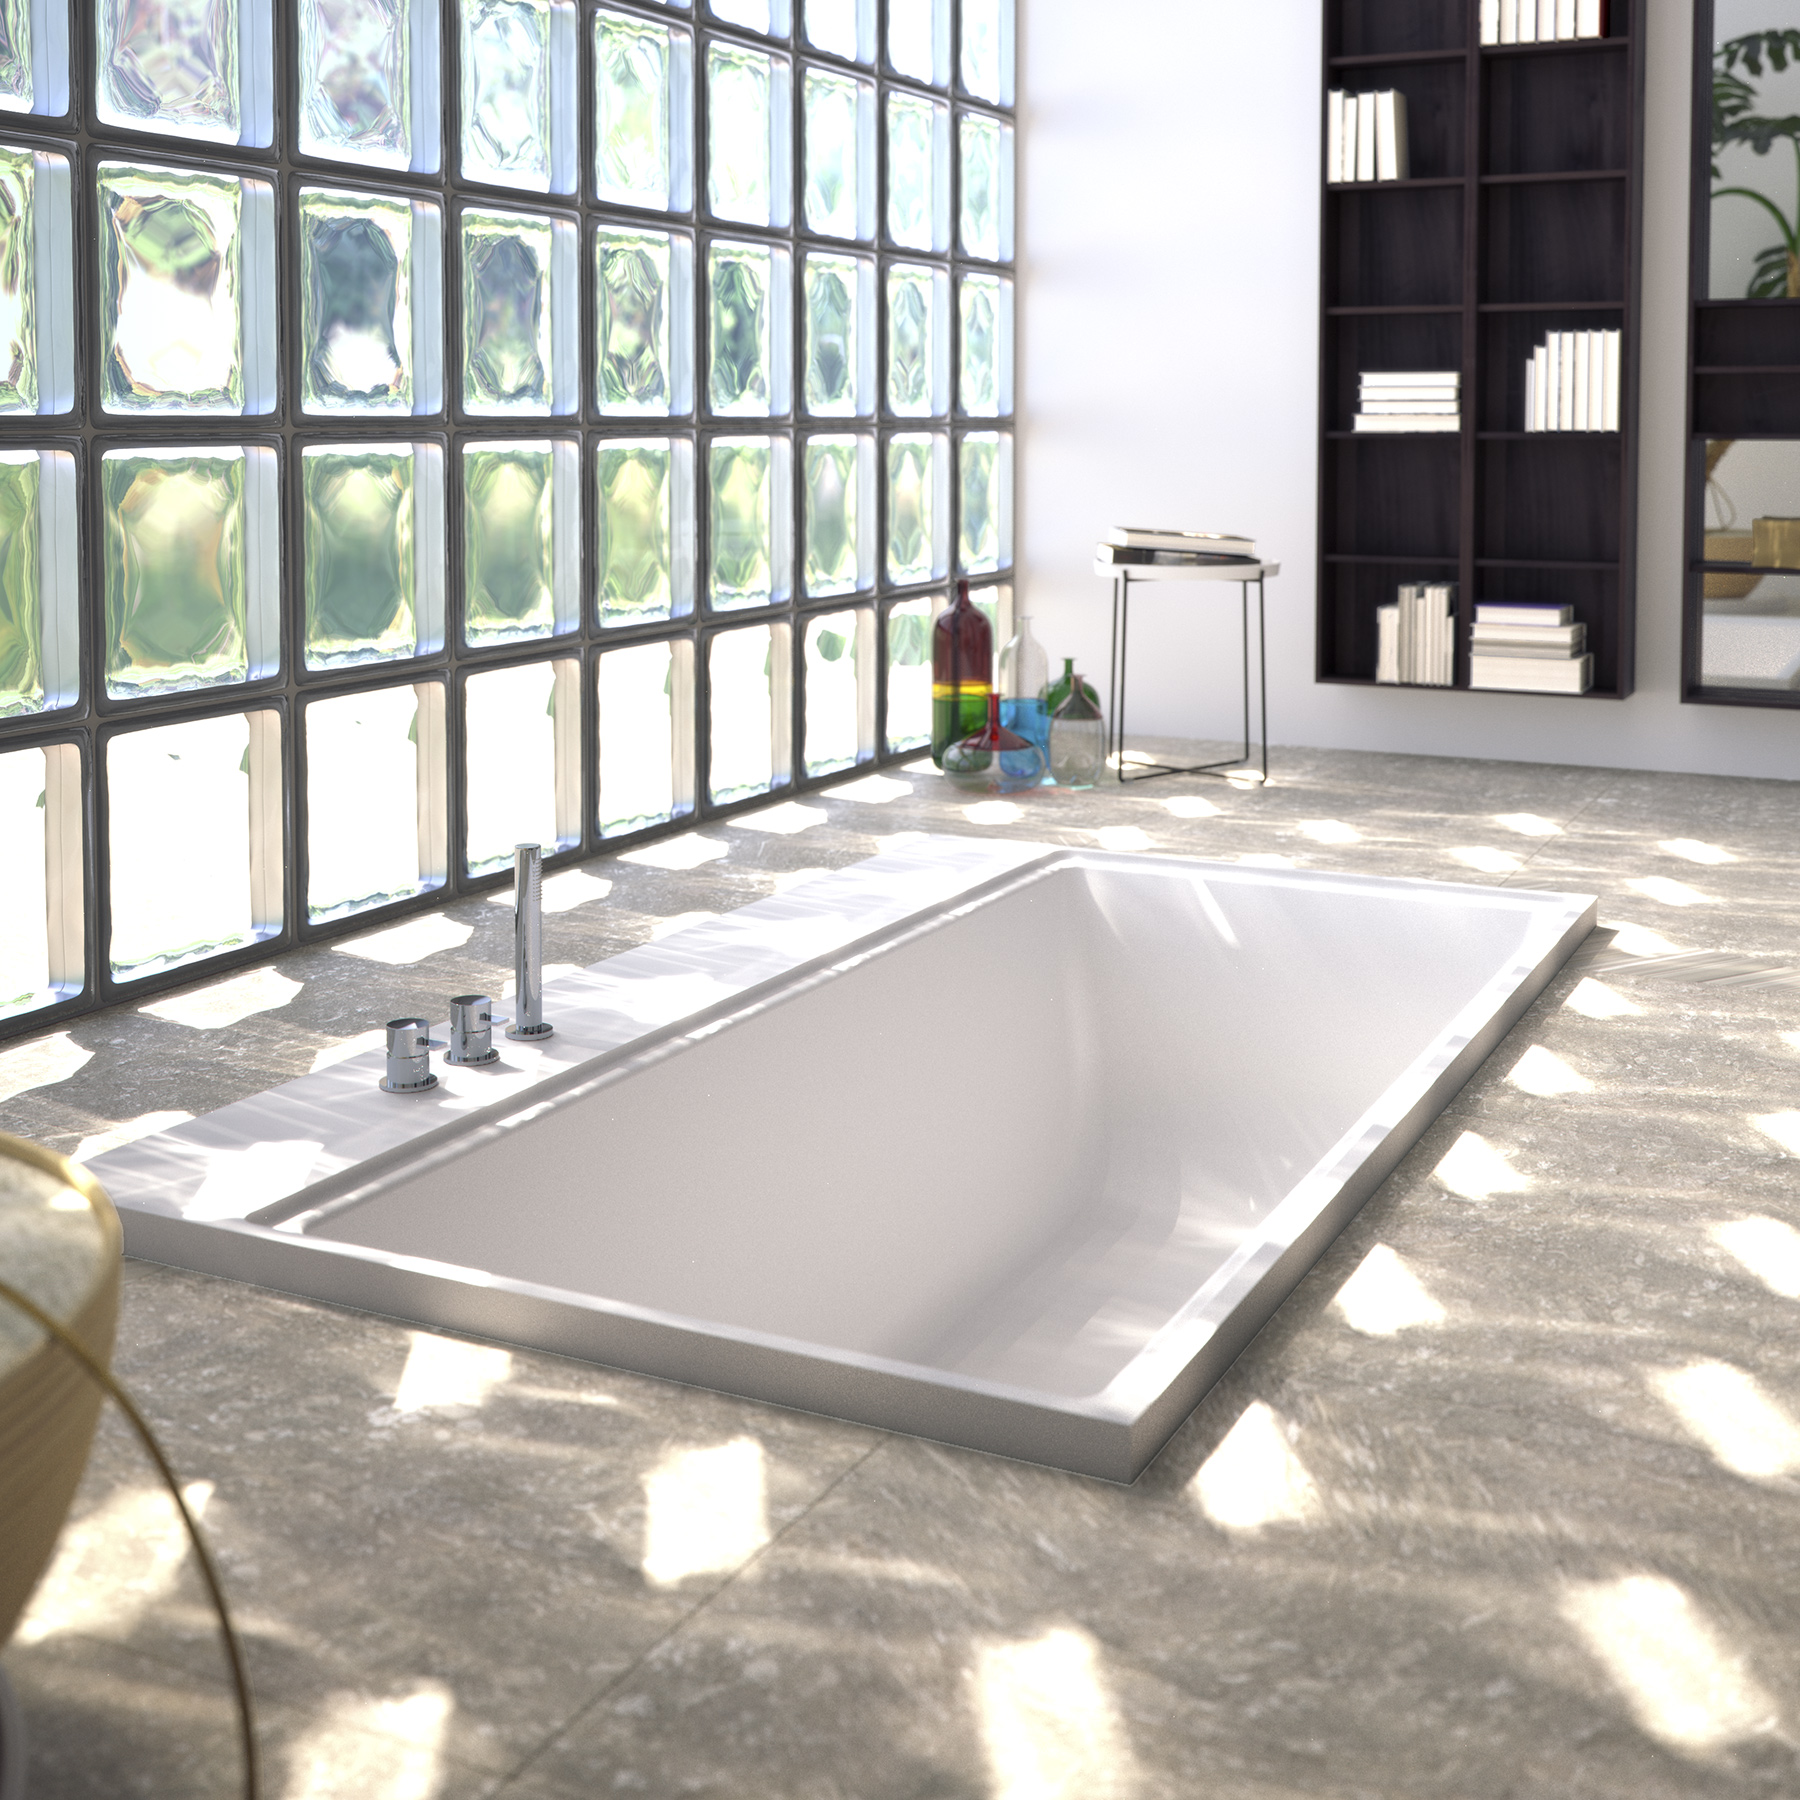 NEUTRA BATHTUBS SYSTEM IN ASTONE®/RECESSED POSITIONING - SIGN products